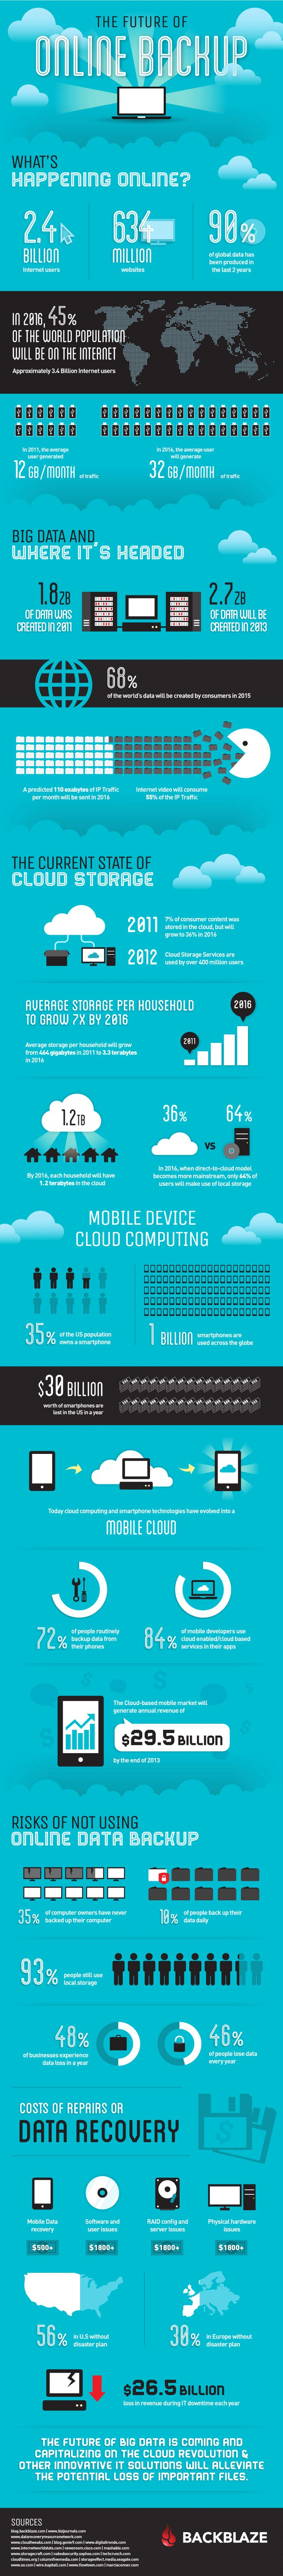 Infographic: The Future of Online Backup #infographic